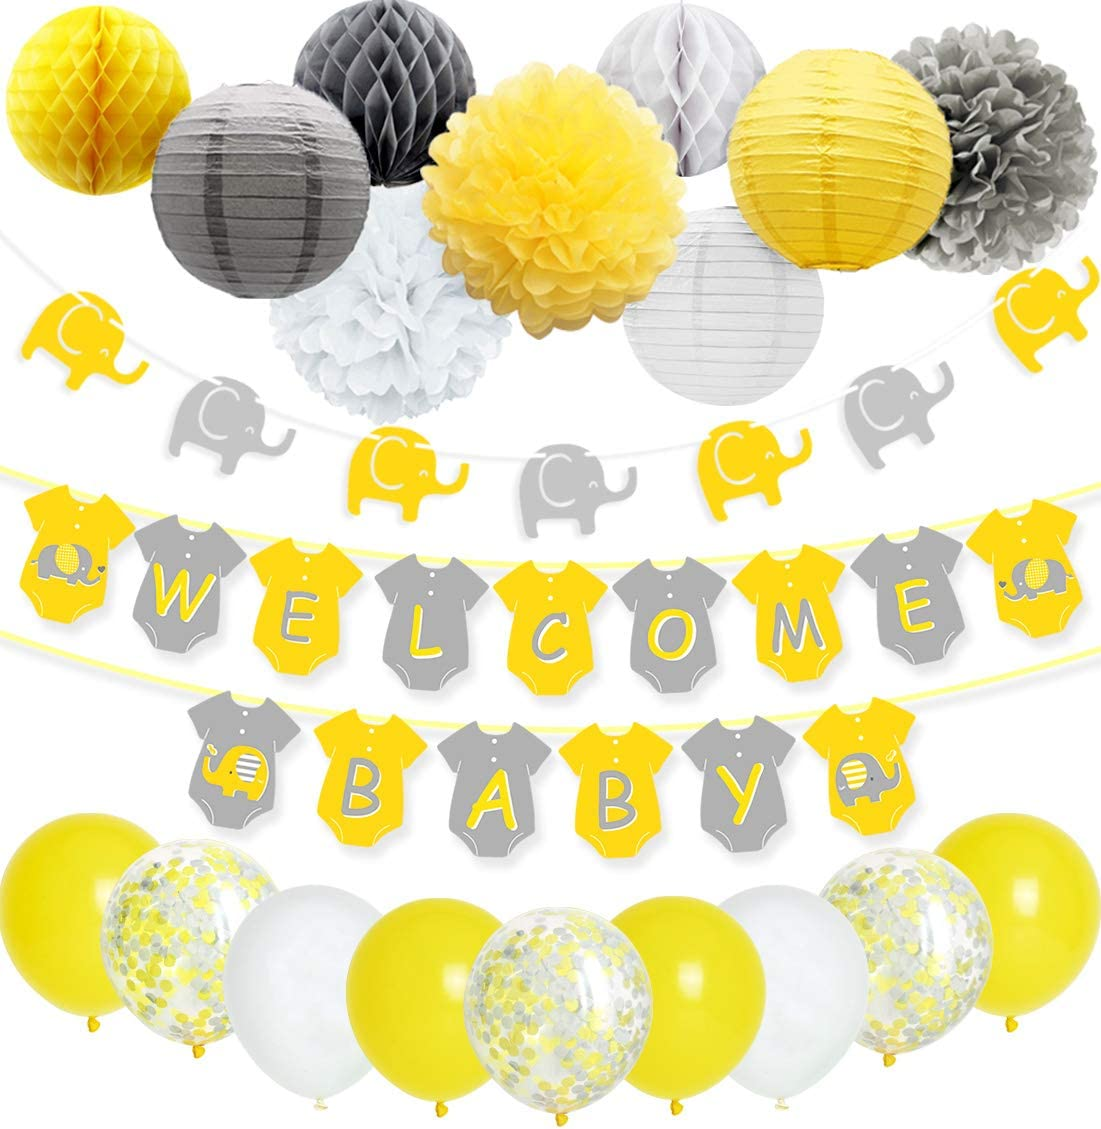 JOYMEMO Yellow Grey Elephant Baby Shower Decorations Neutral for Boy or Girl, Welcome Baby Banner Elephant Garland Confetti Balloons for Gender Neutral Baby Decor